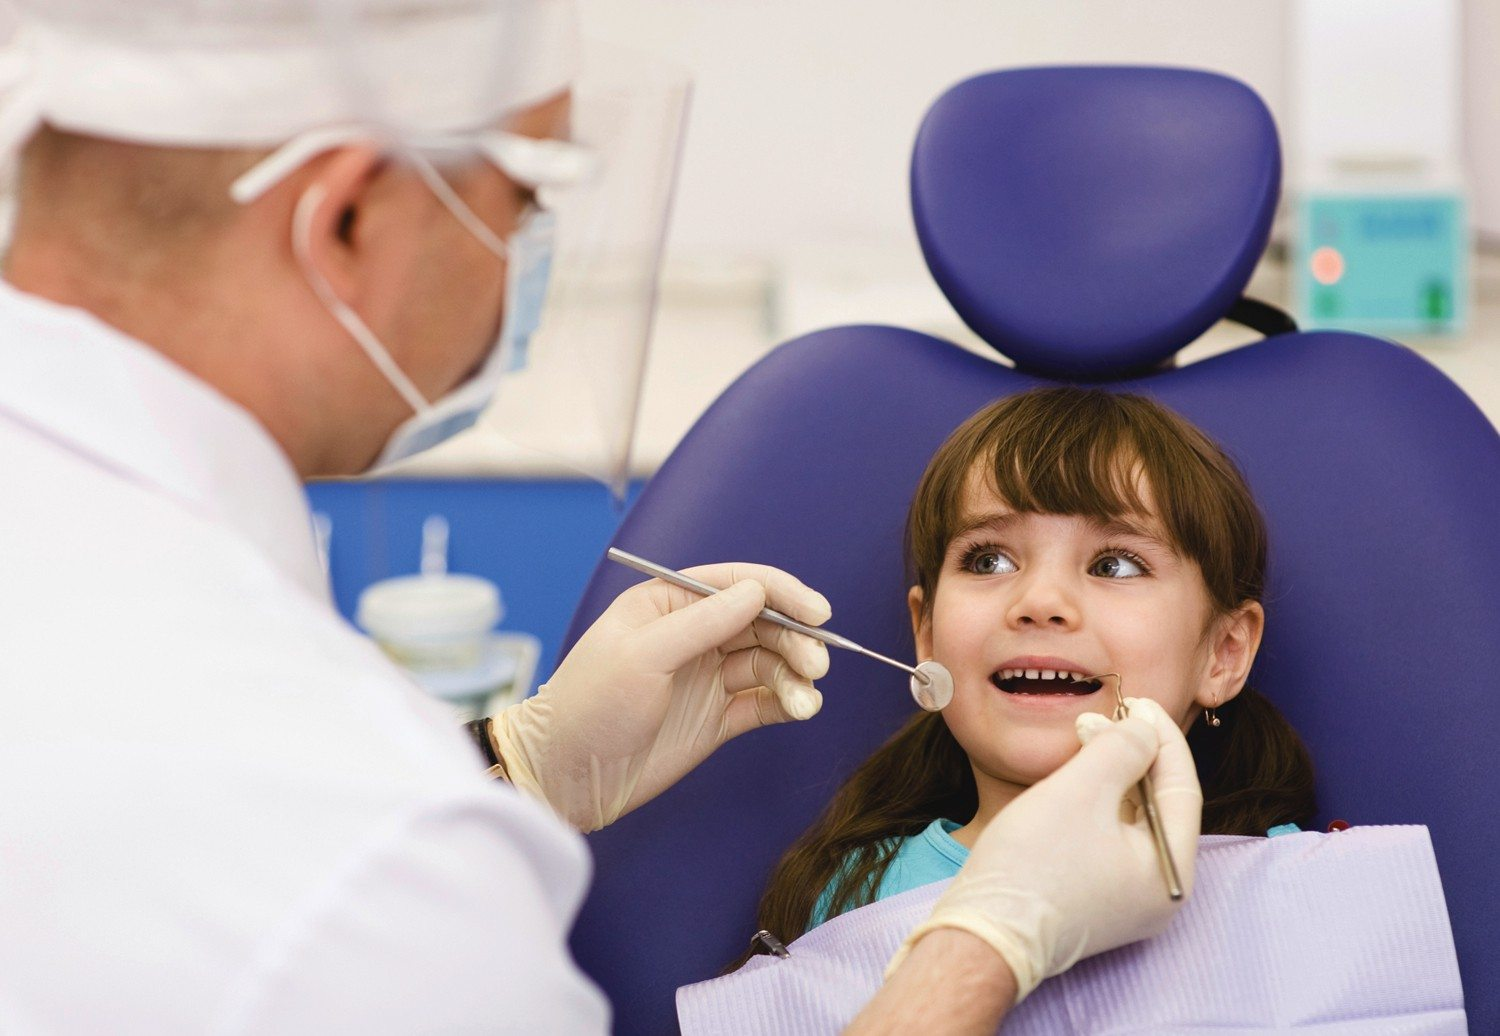 Smile Day gives San Mateo kids free dental services.